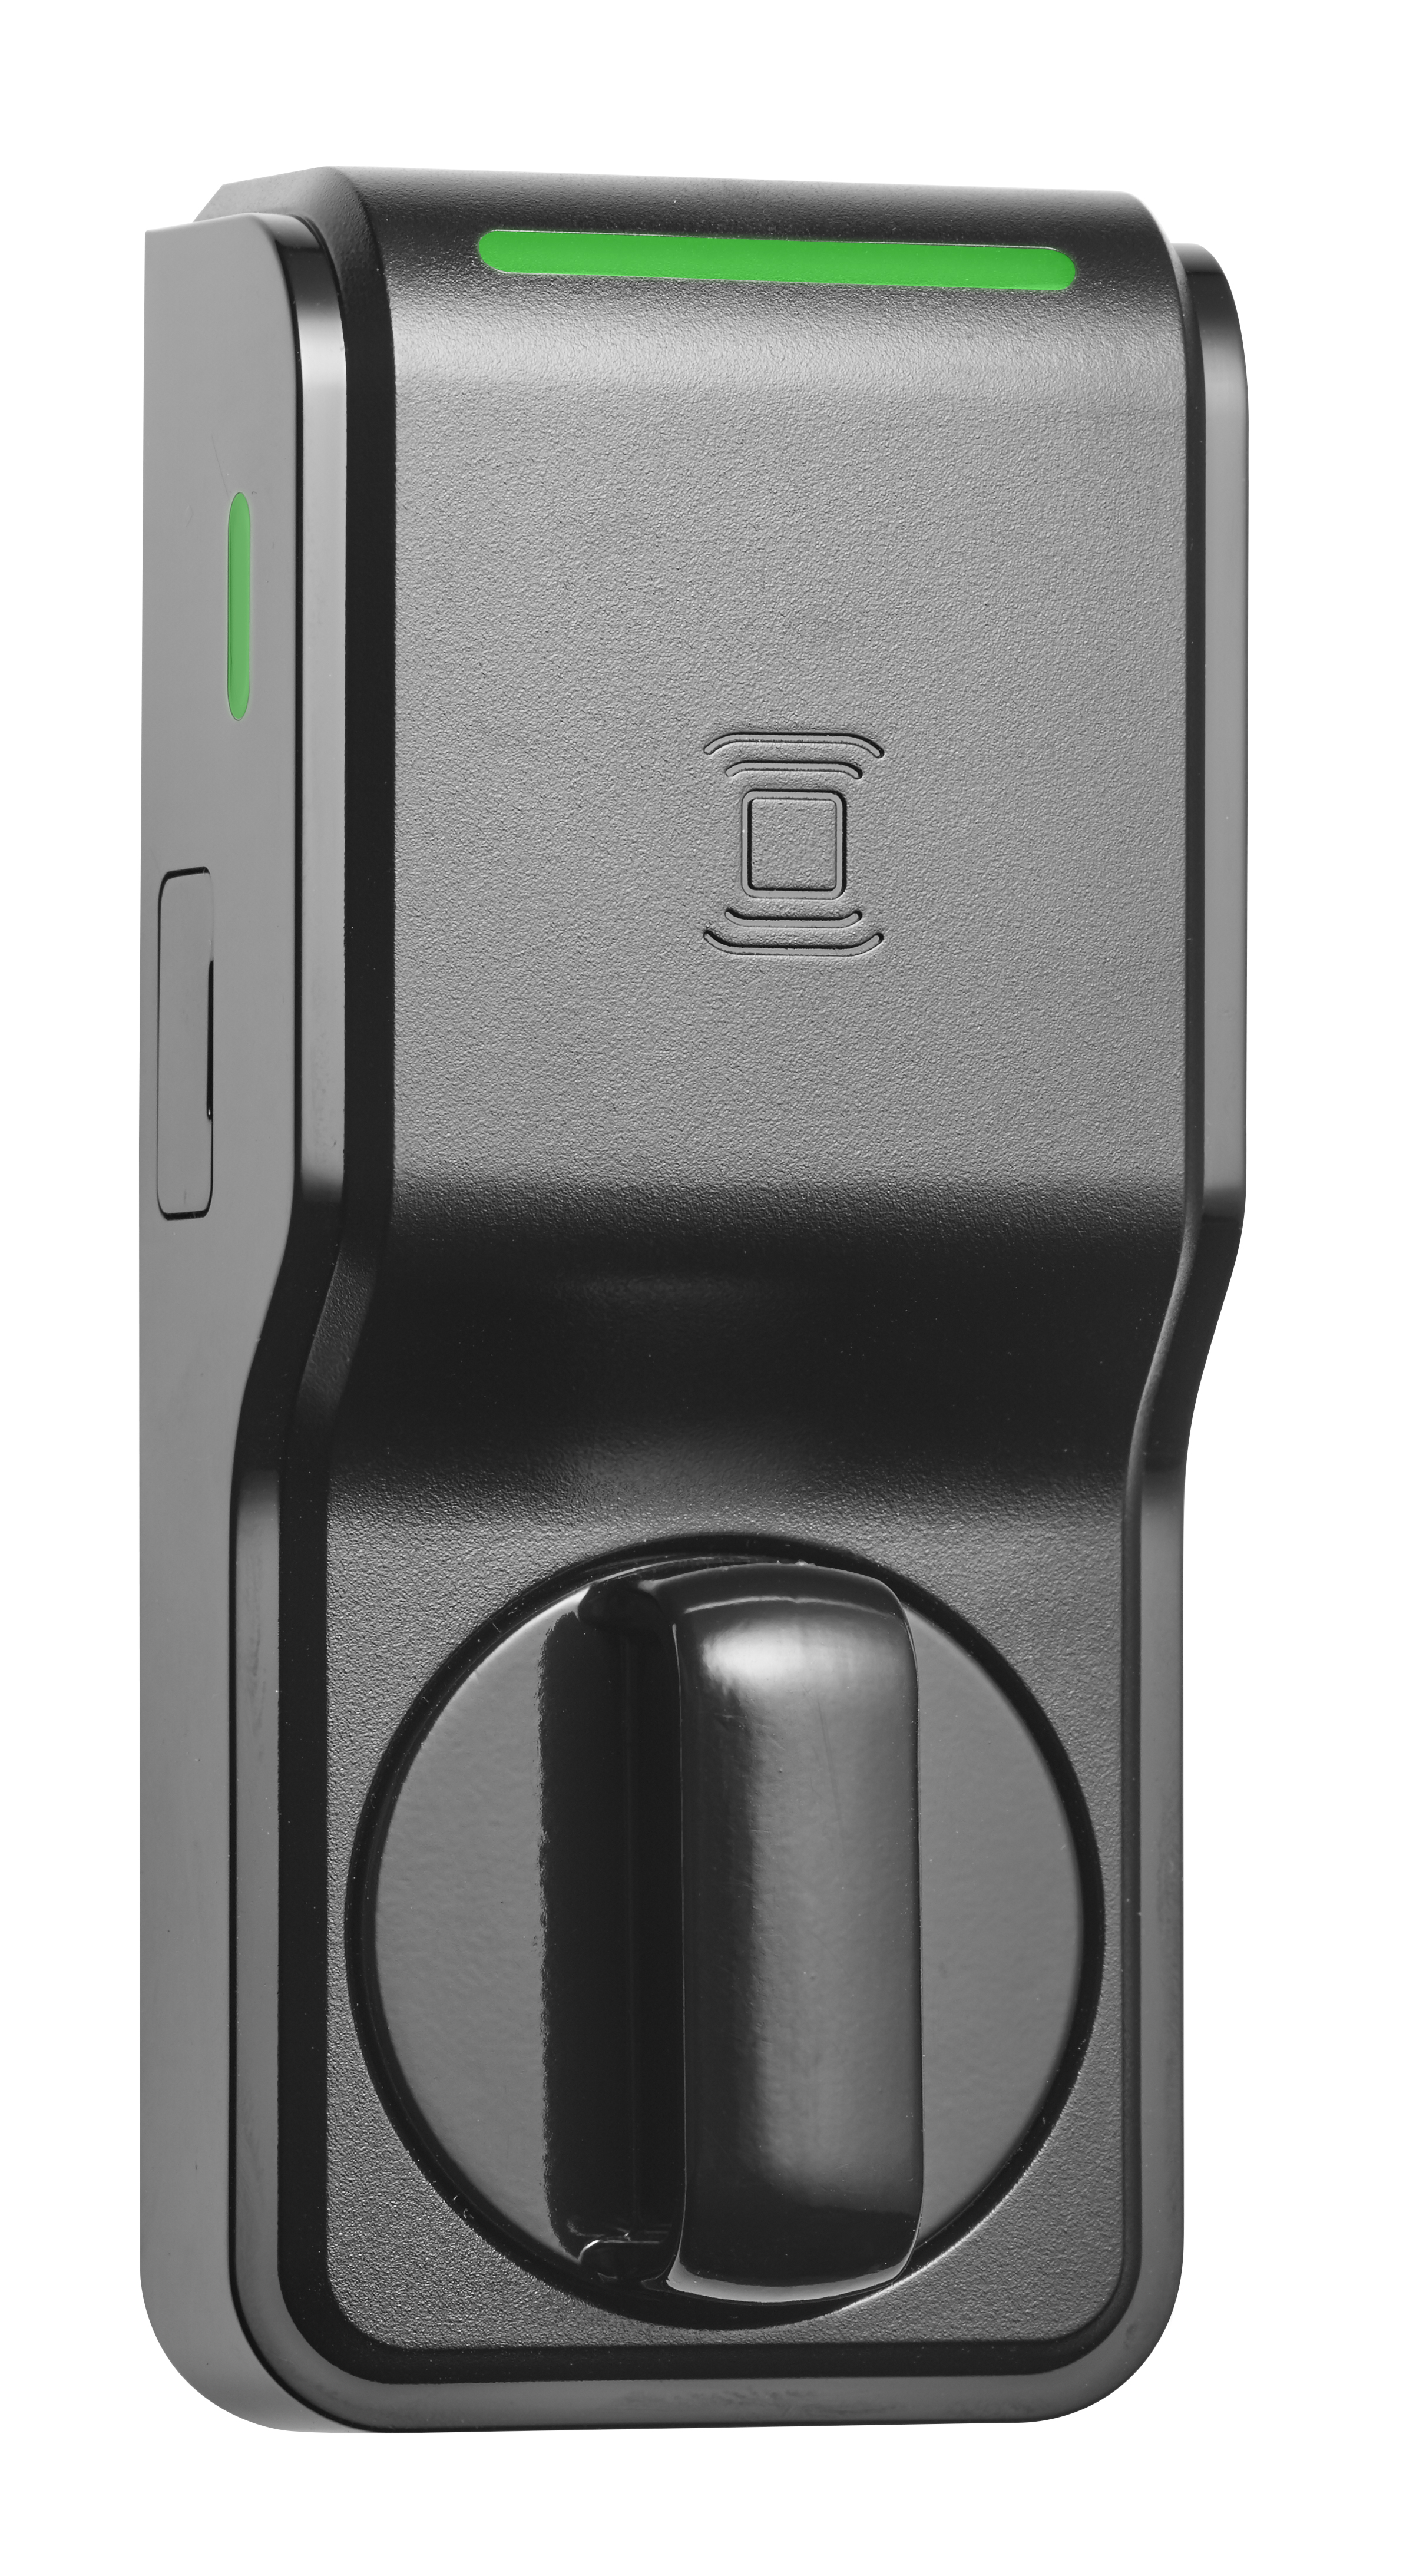 Hes K100 Cabinet Lock